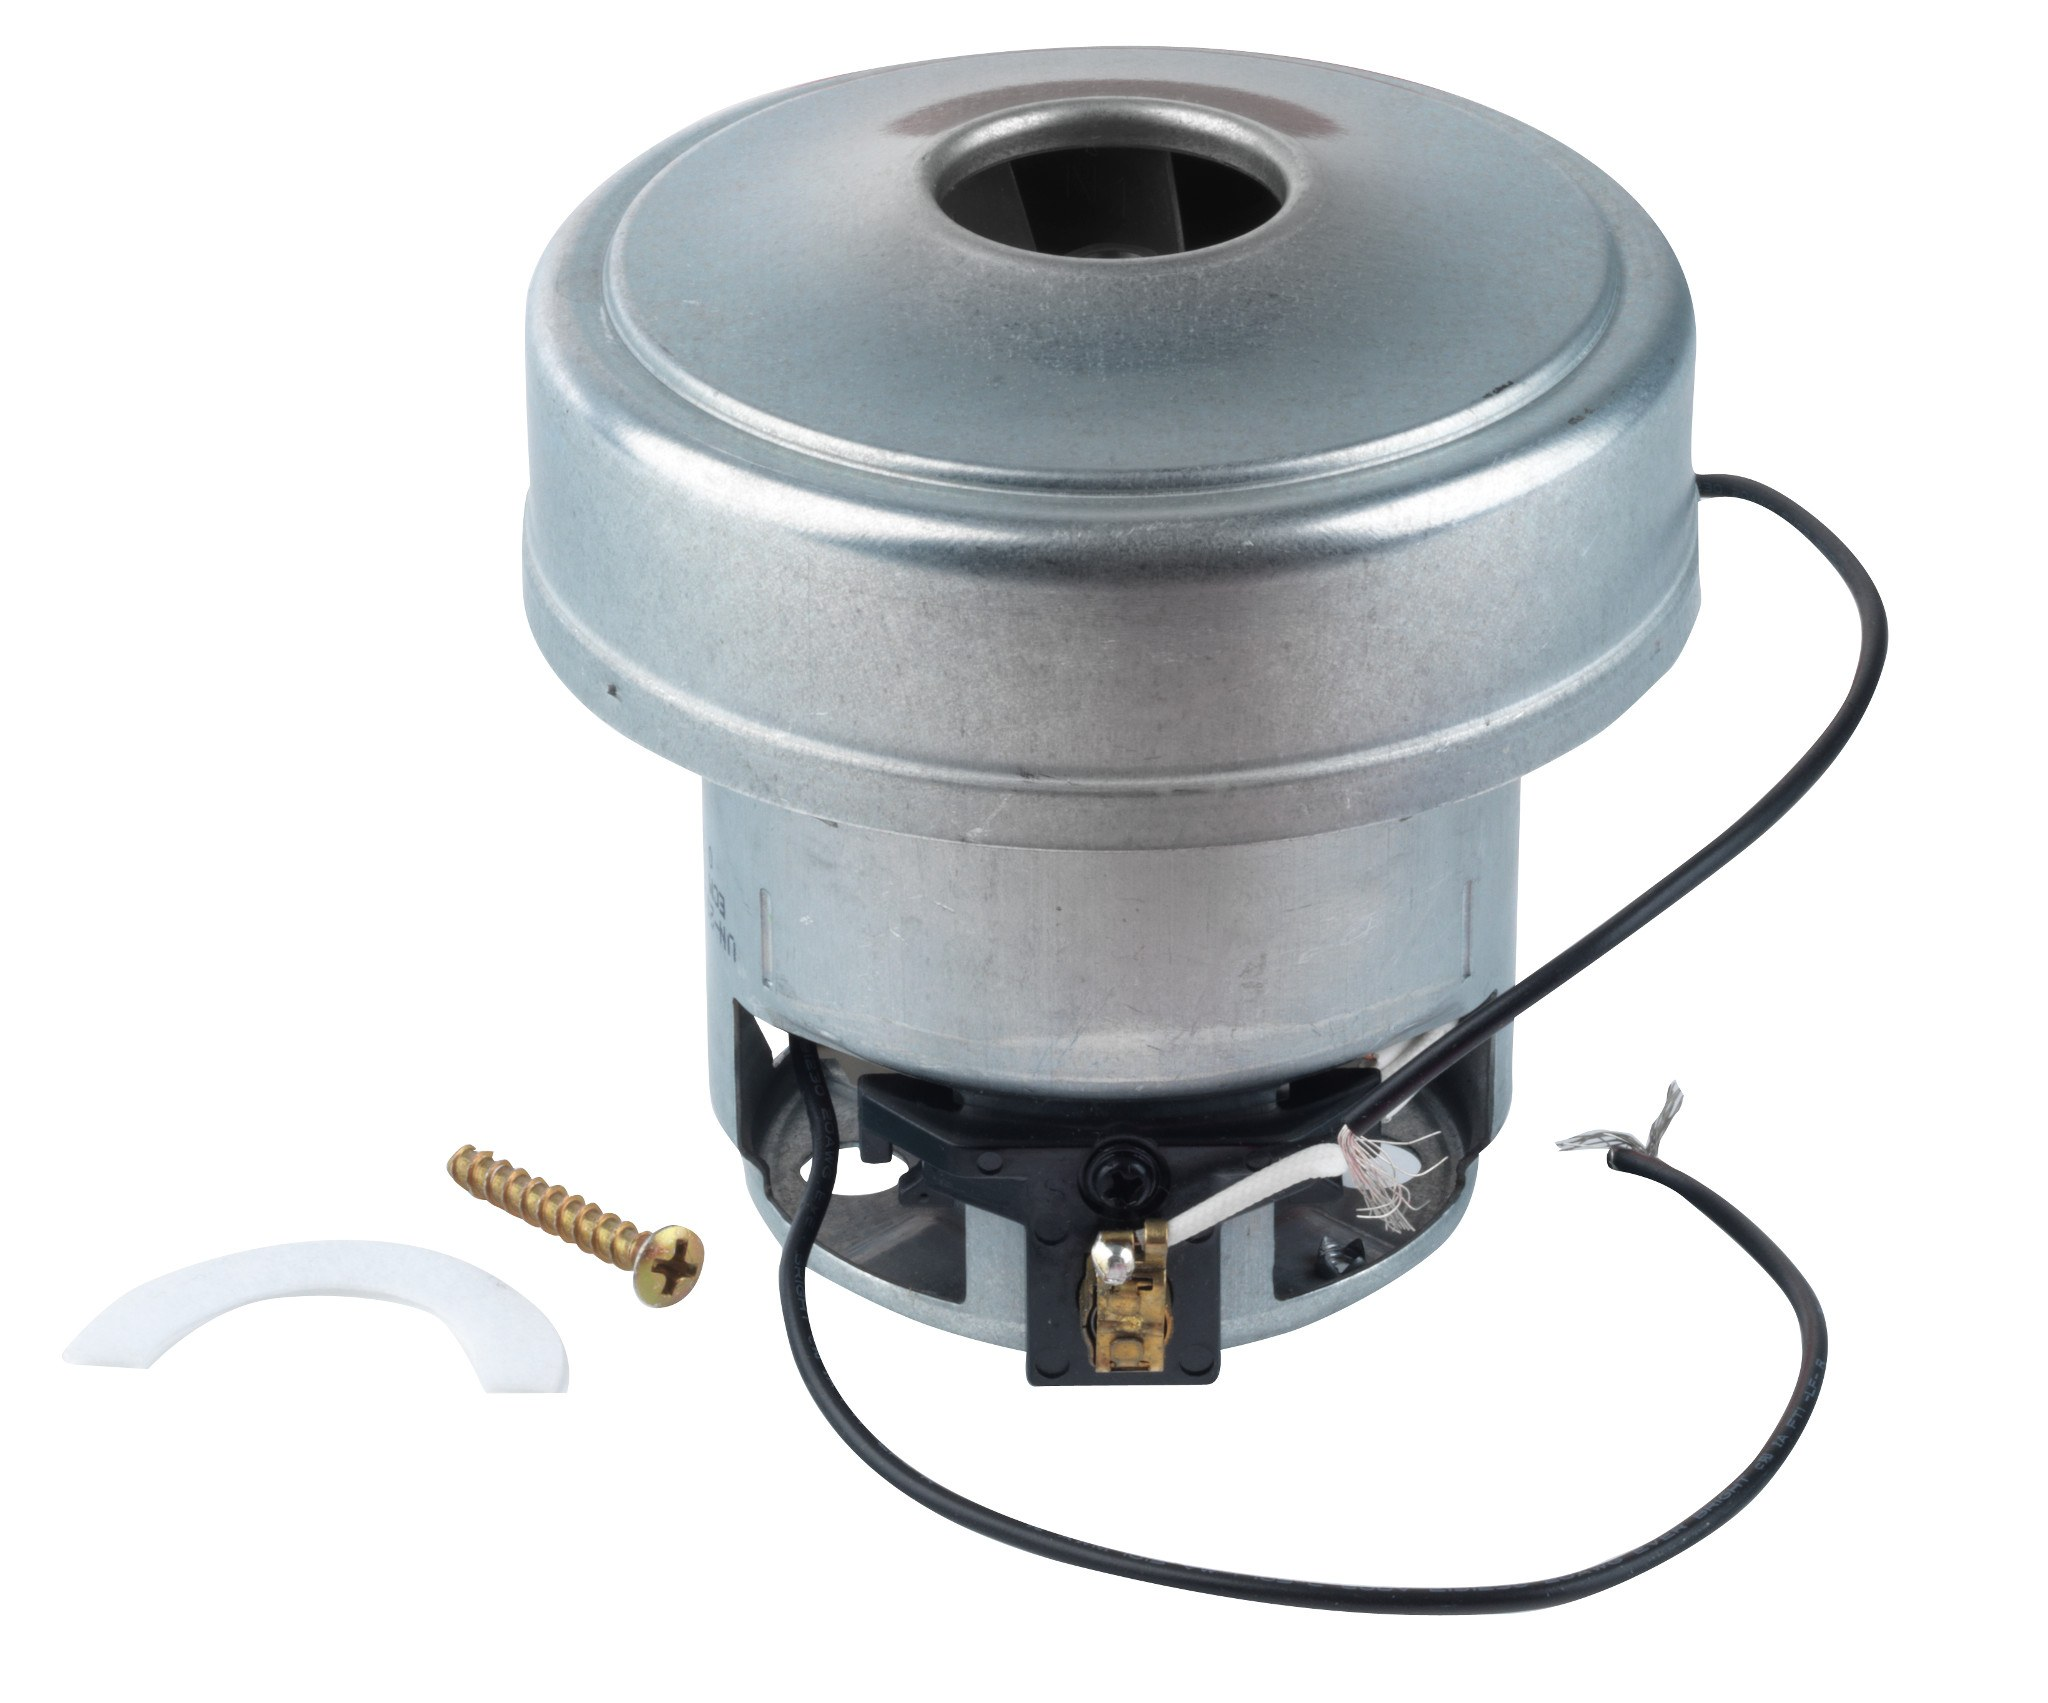 Sanitaire Light Upright S782B MOTOR ASSEMBLY - CARTONED